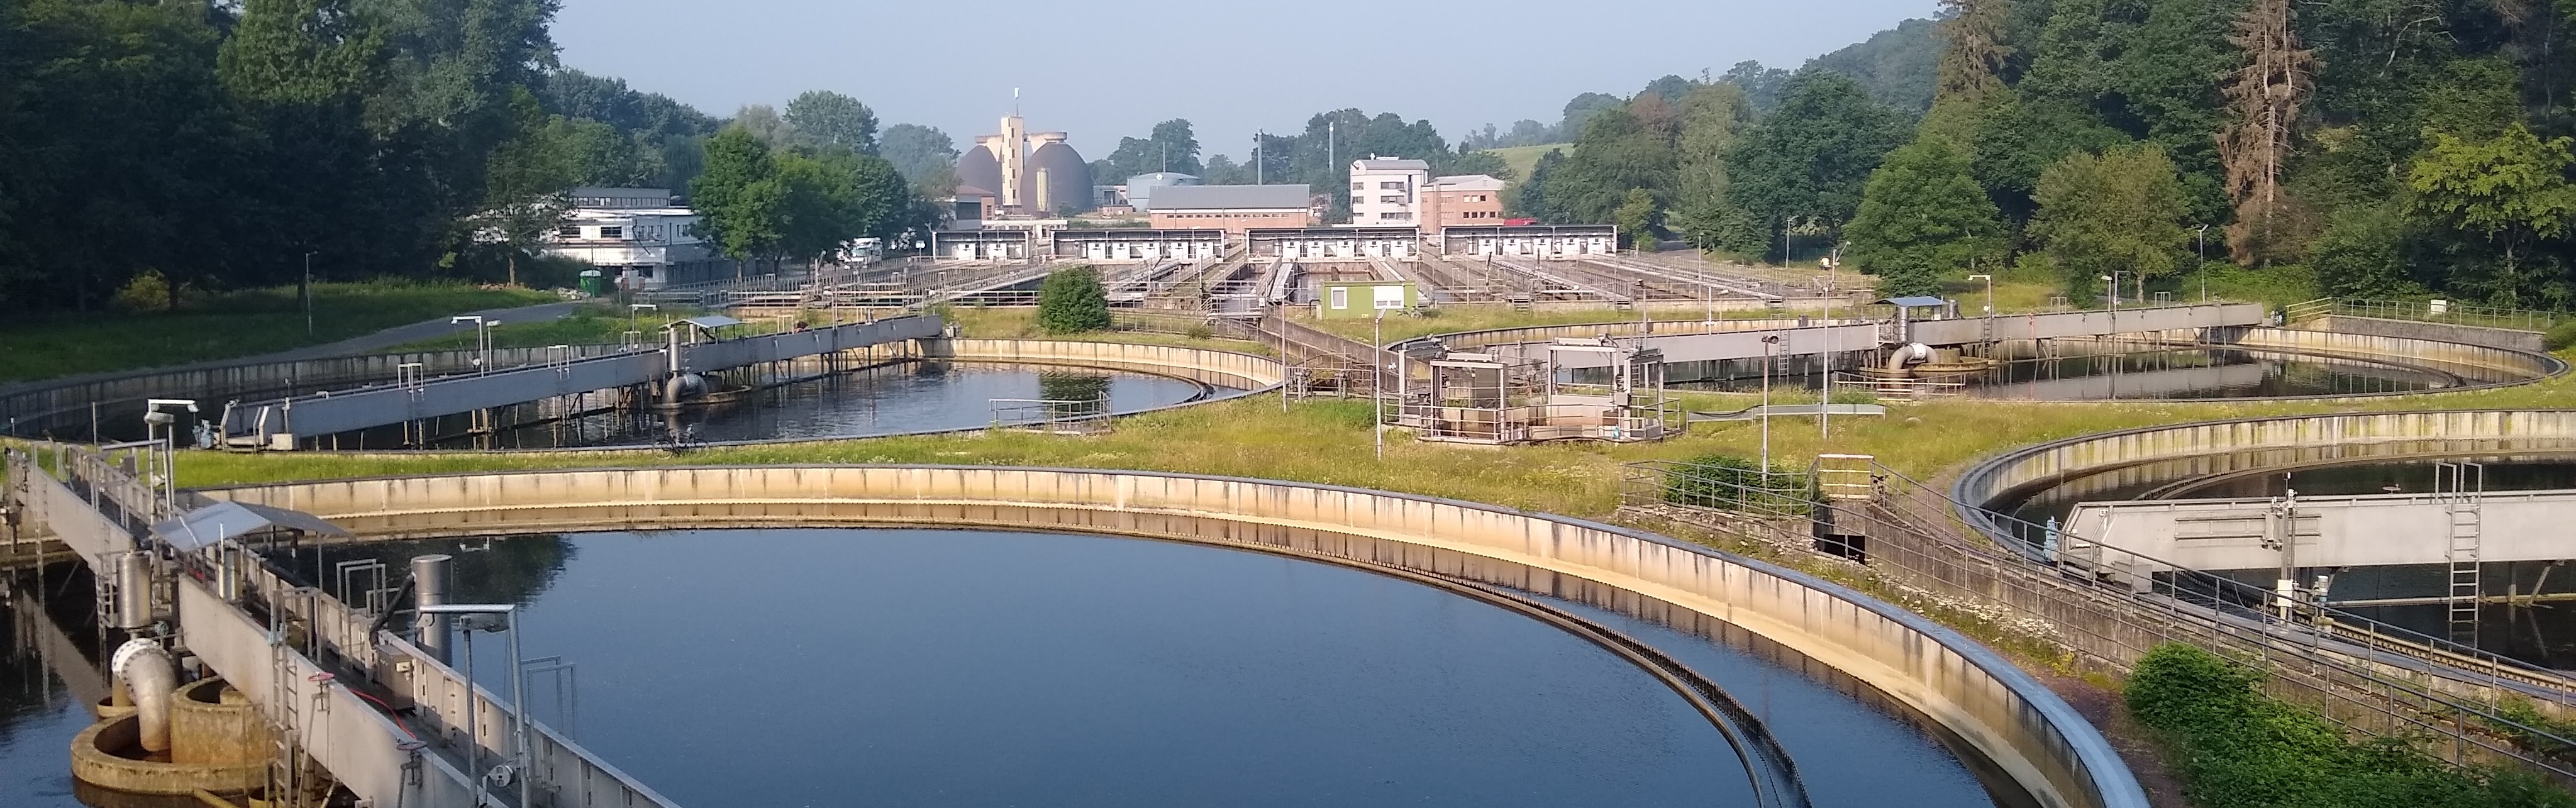 Overview of the sewage plant Aachen-Soers